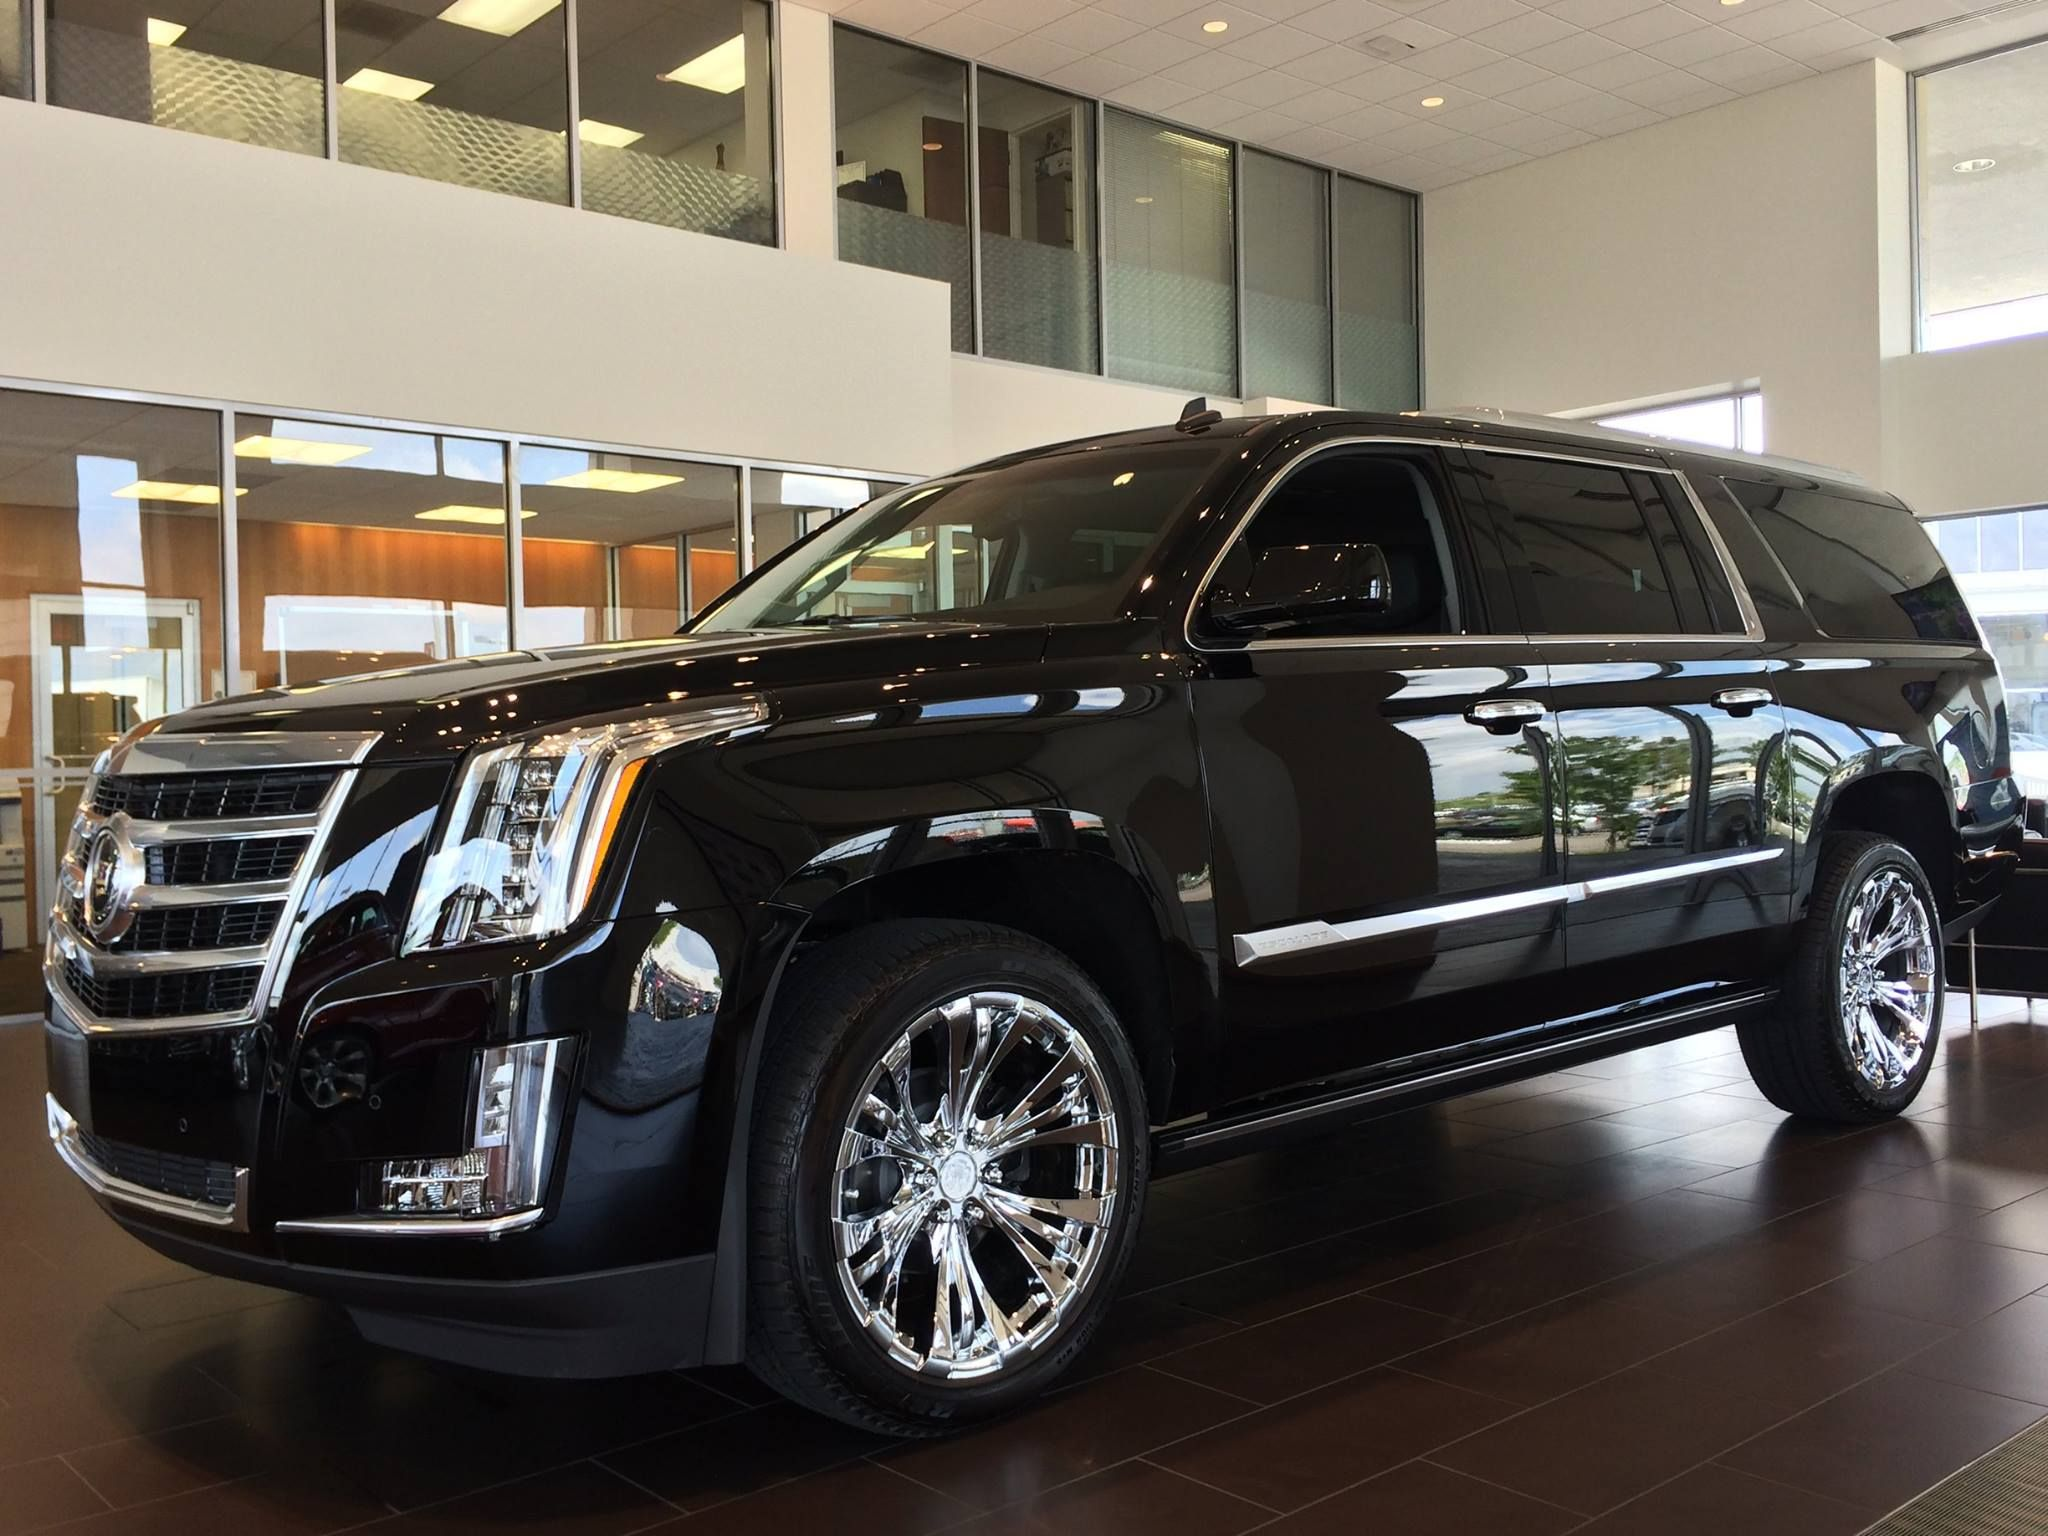 Introducing the 2015 cadillac escalade with vogue tyre 22inch rampage custom wheels on it pictures